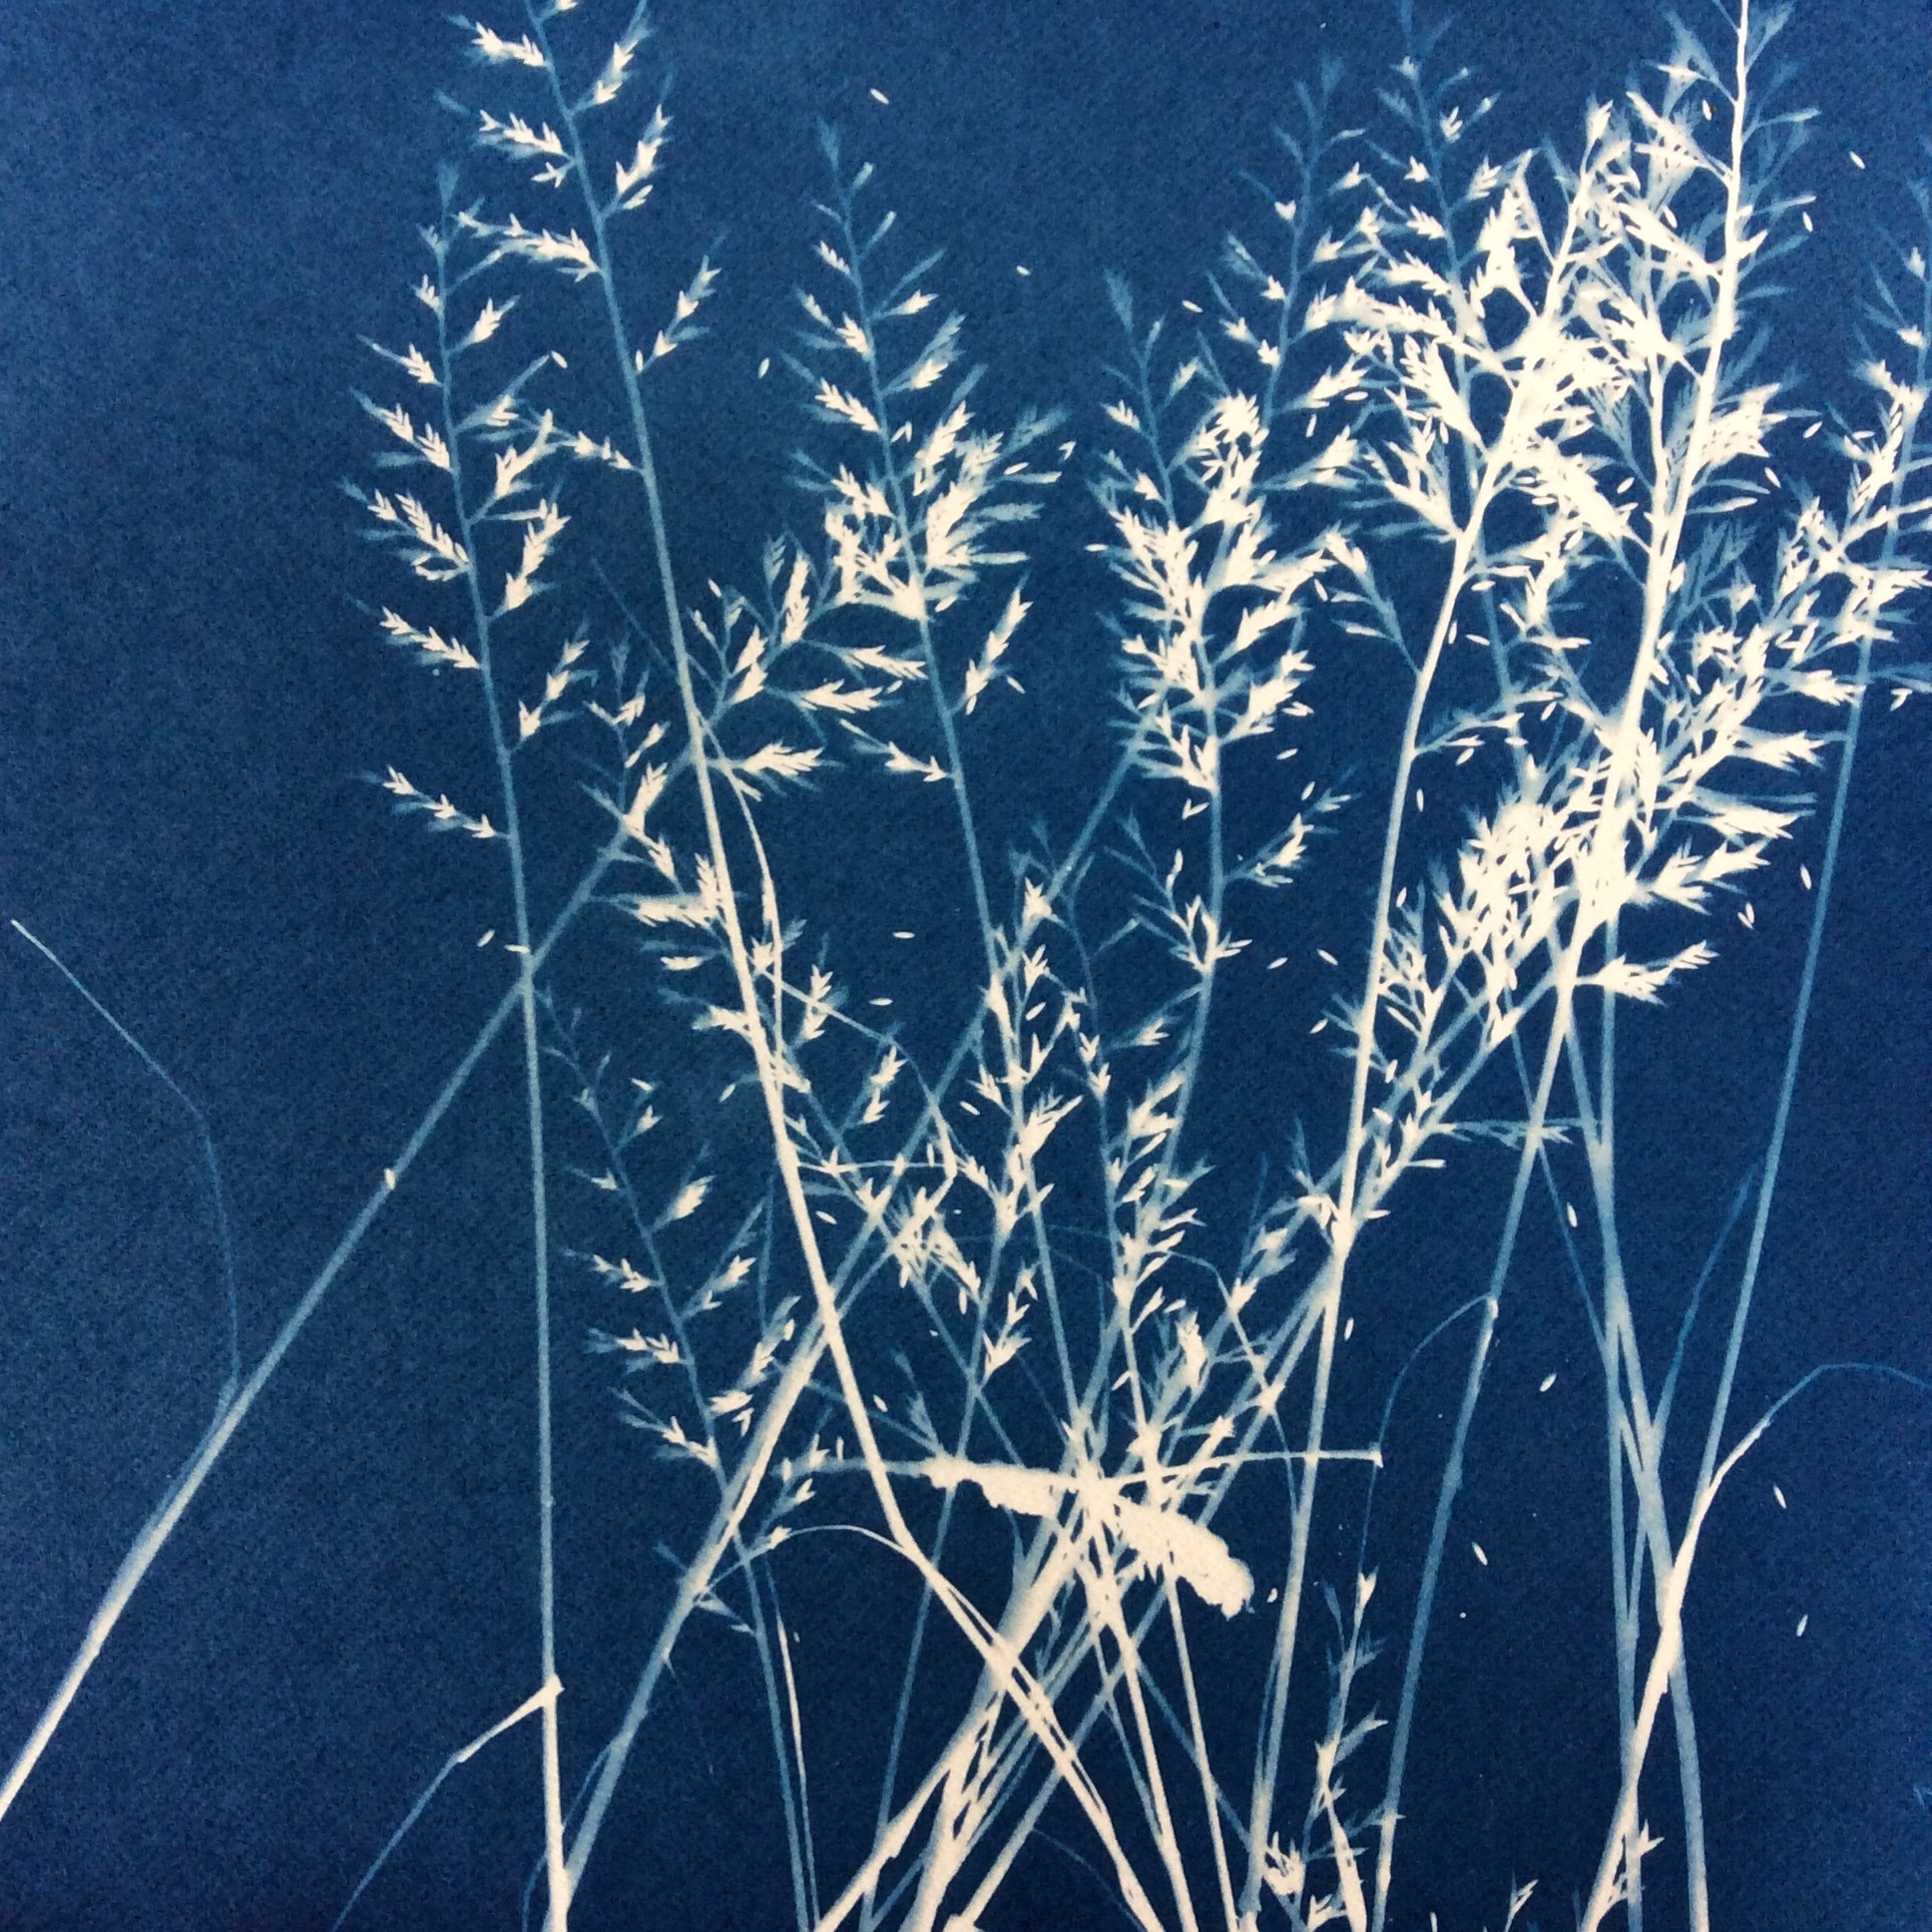 Grasses found in the hedgerows surrounding the farm.